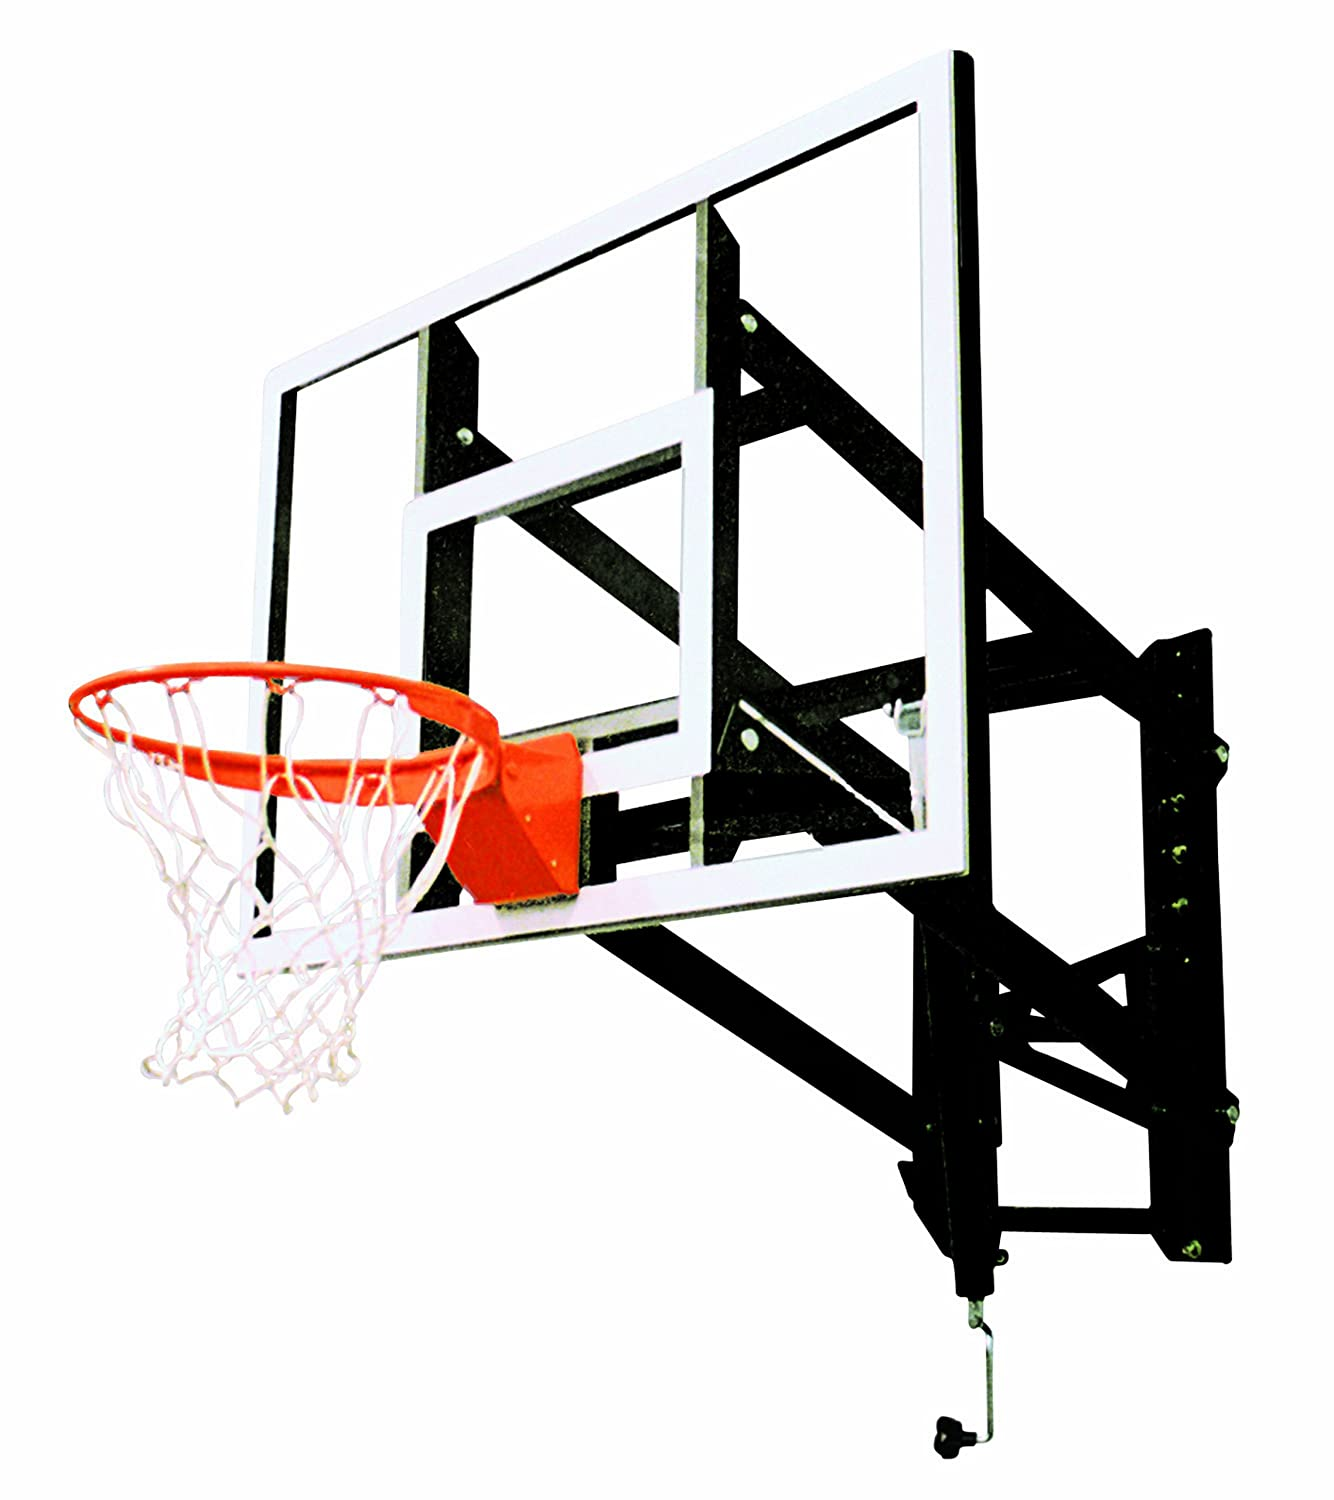 Amazon.com : Goalsetter GS48 Wall Mounted Adjustable Basketball System With  : Sports U0026 Outdoors